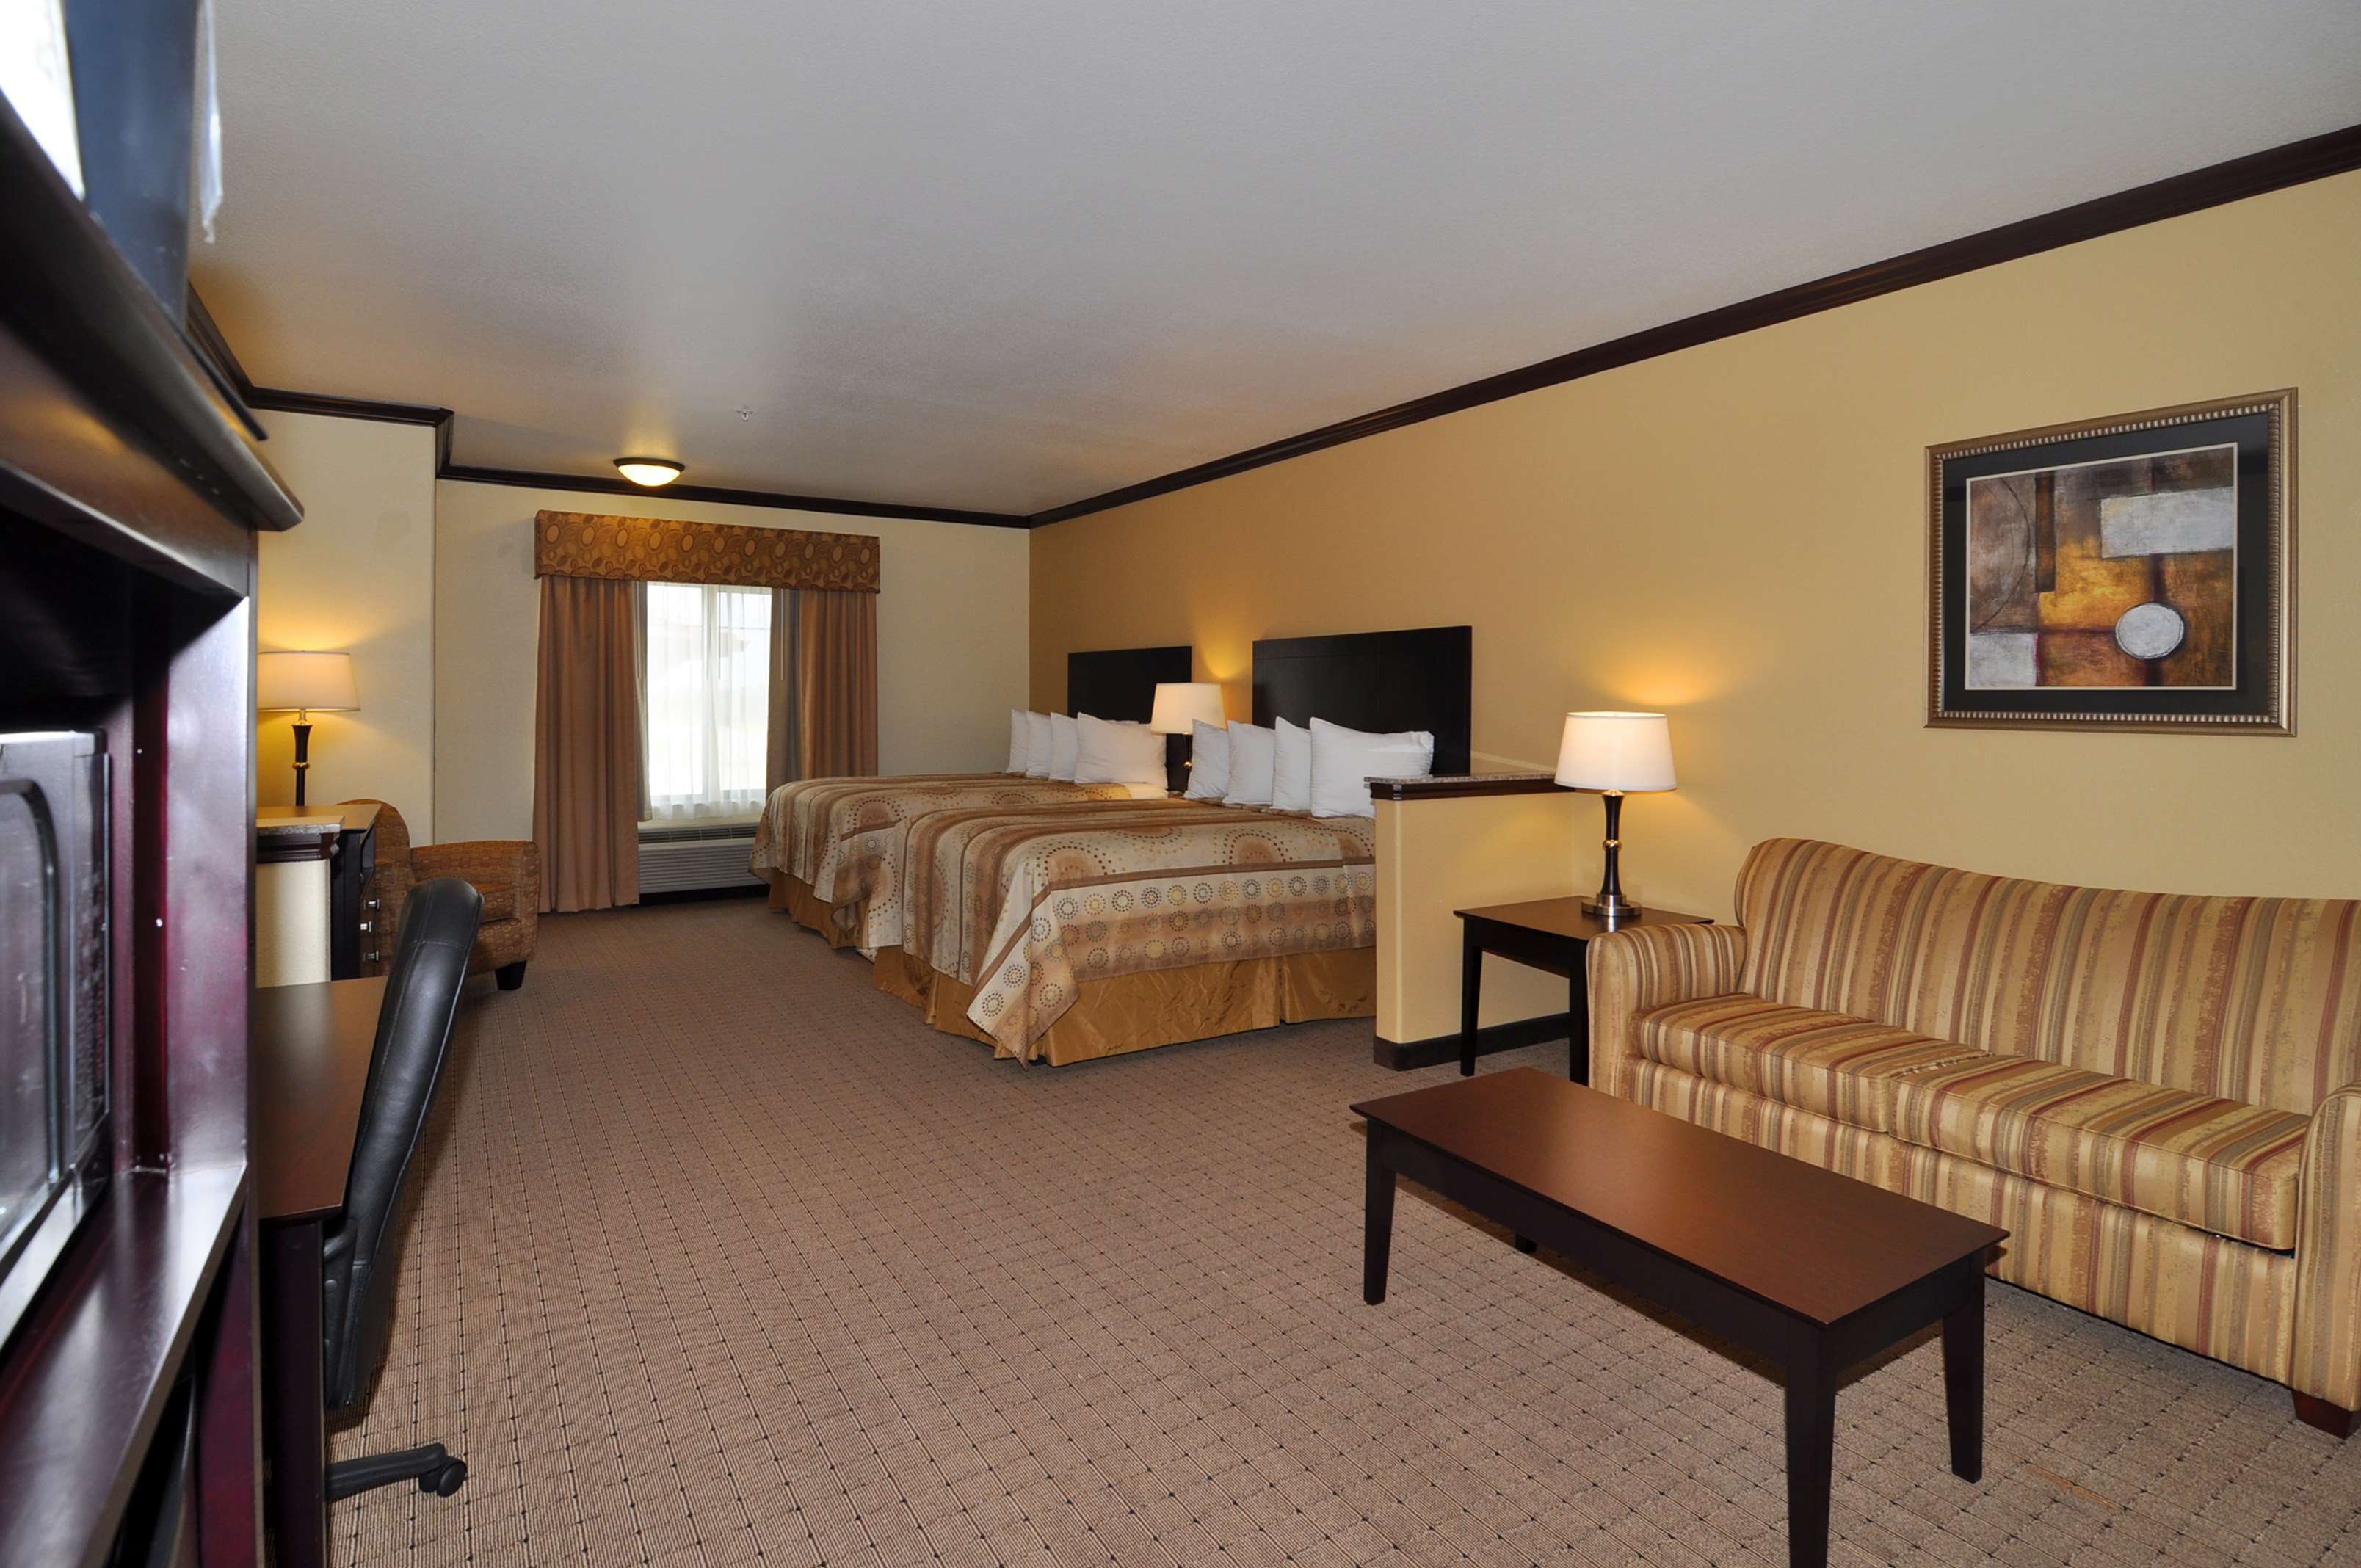 Best Western Plus Royal Mountain Inn & Suites image 10